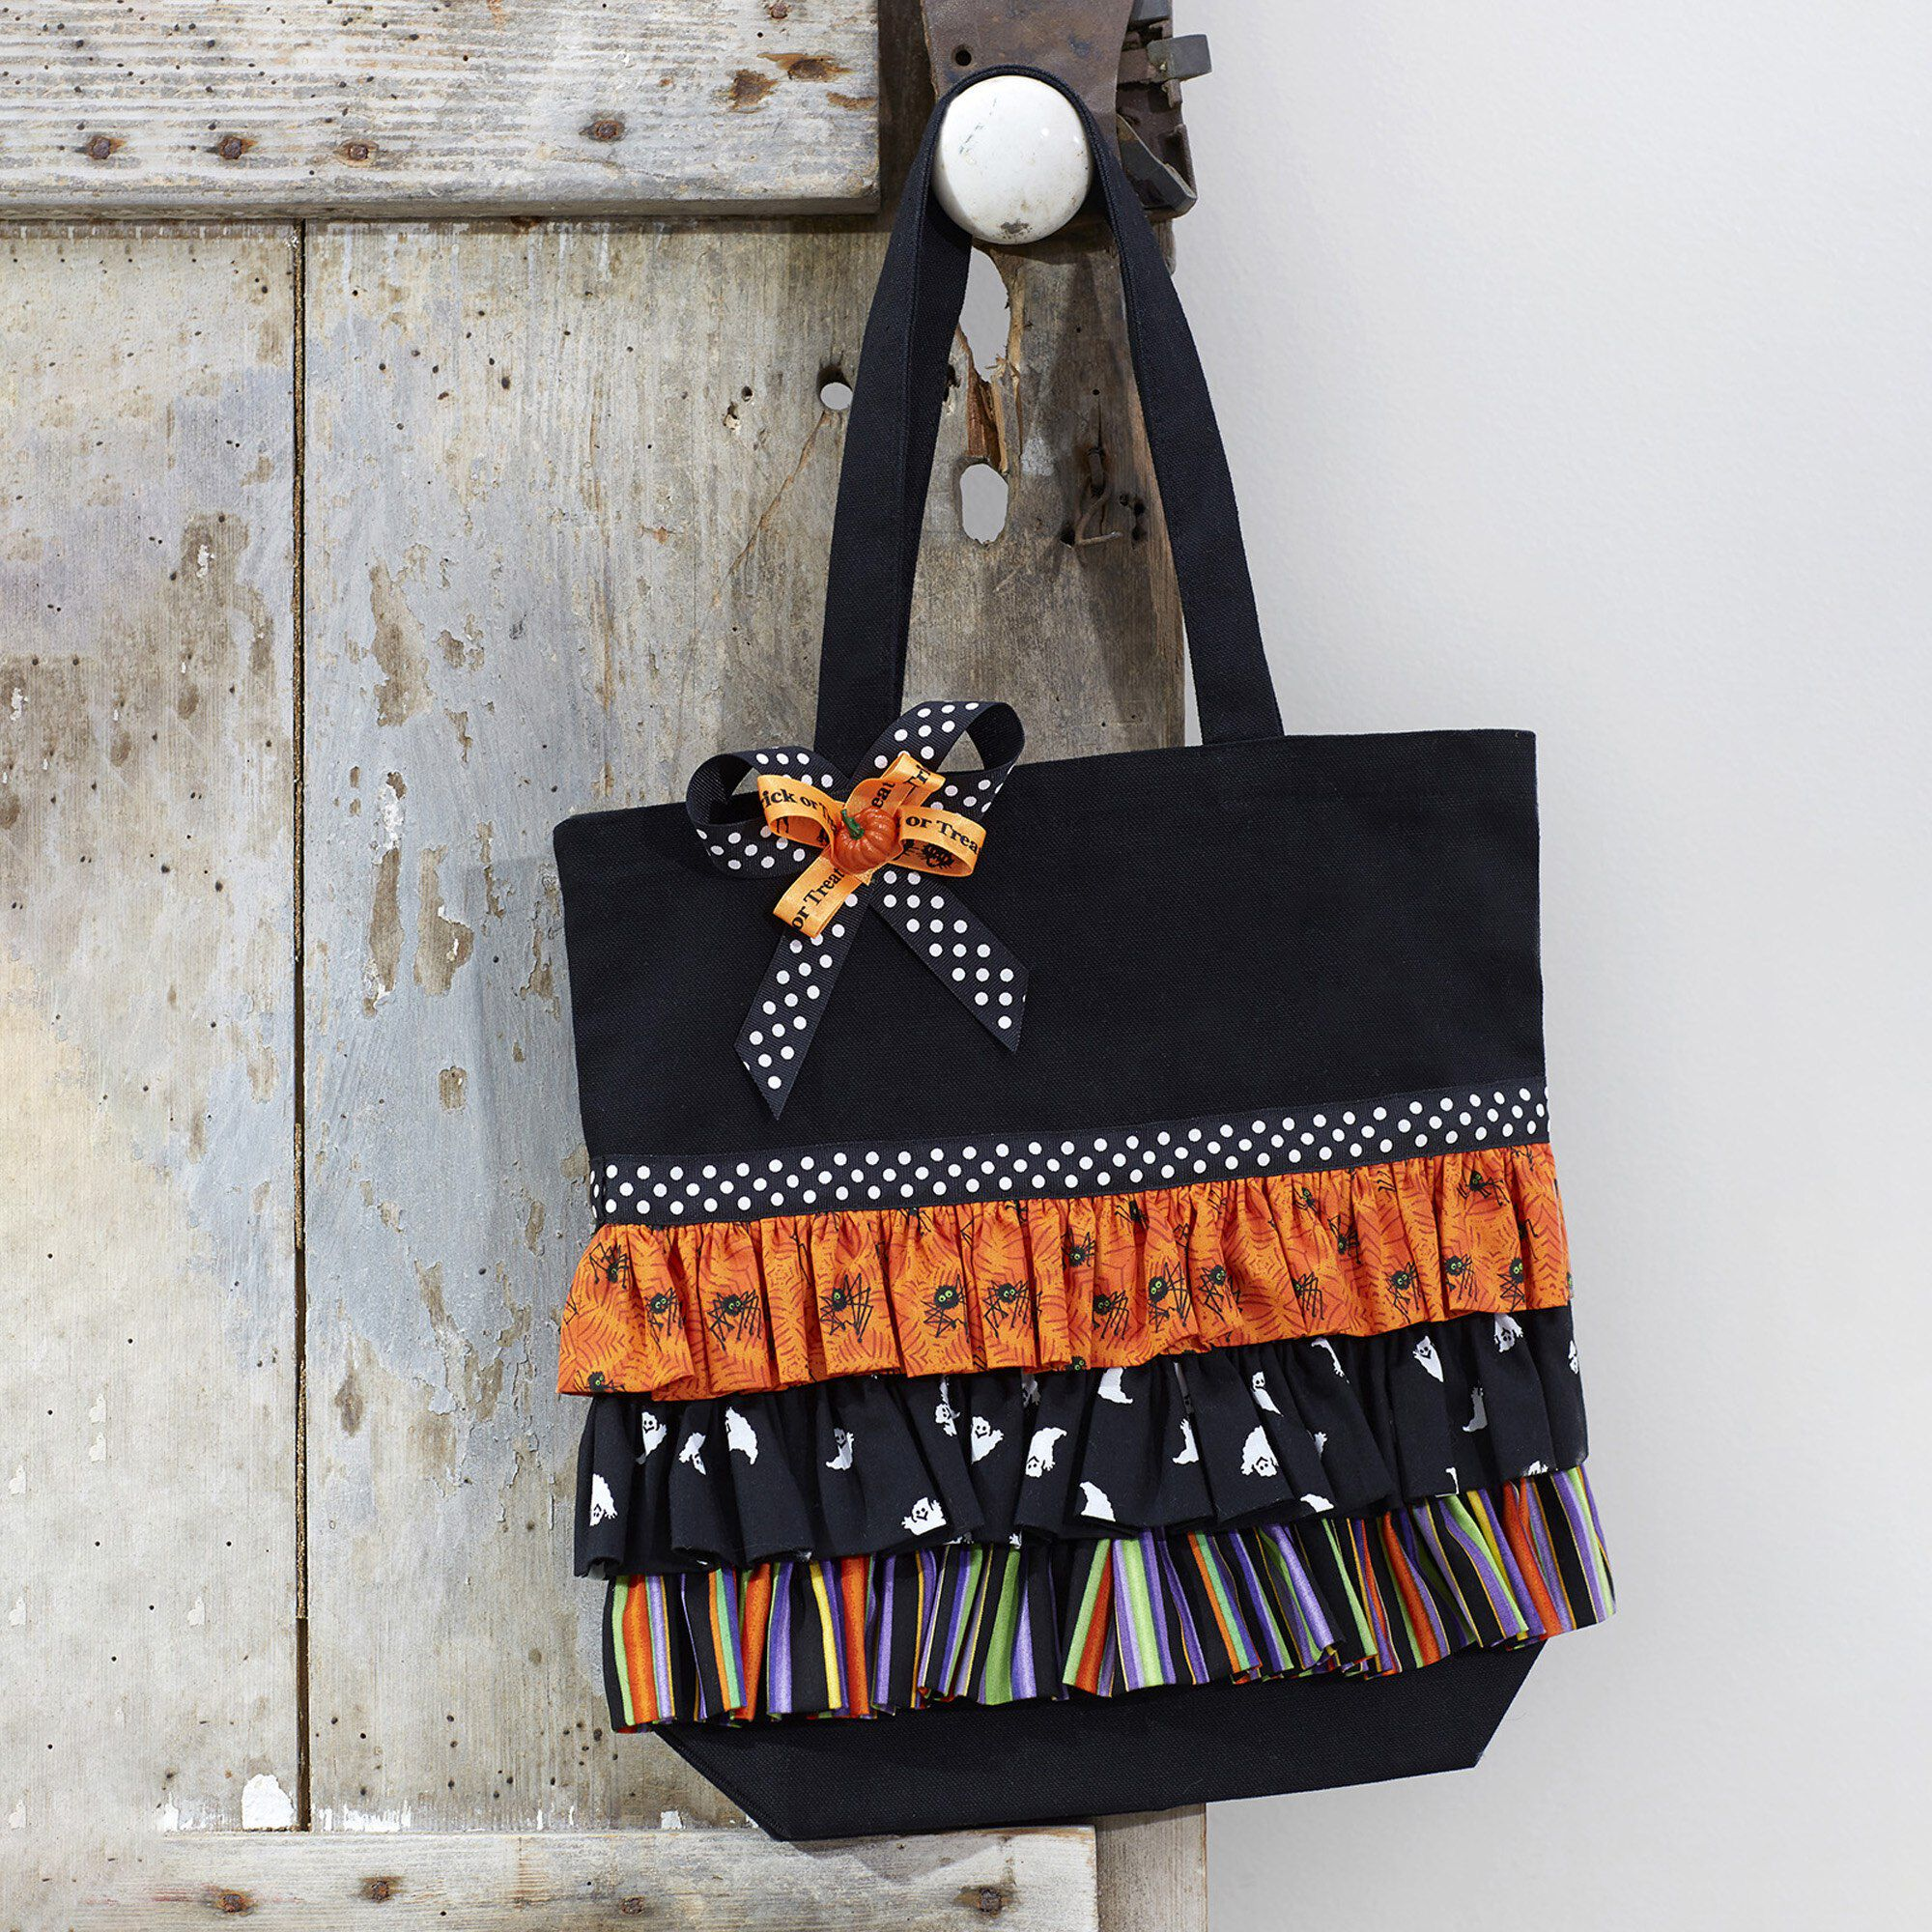 DUAL DUTY RUFFLED TRICK-OR-TREAT TOTE